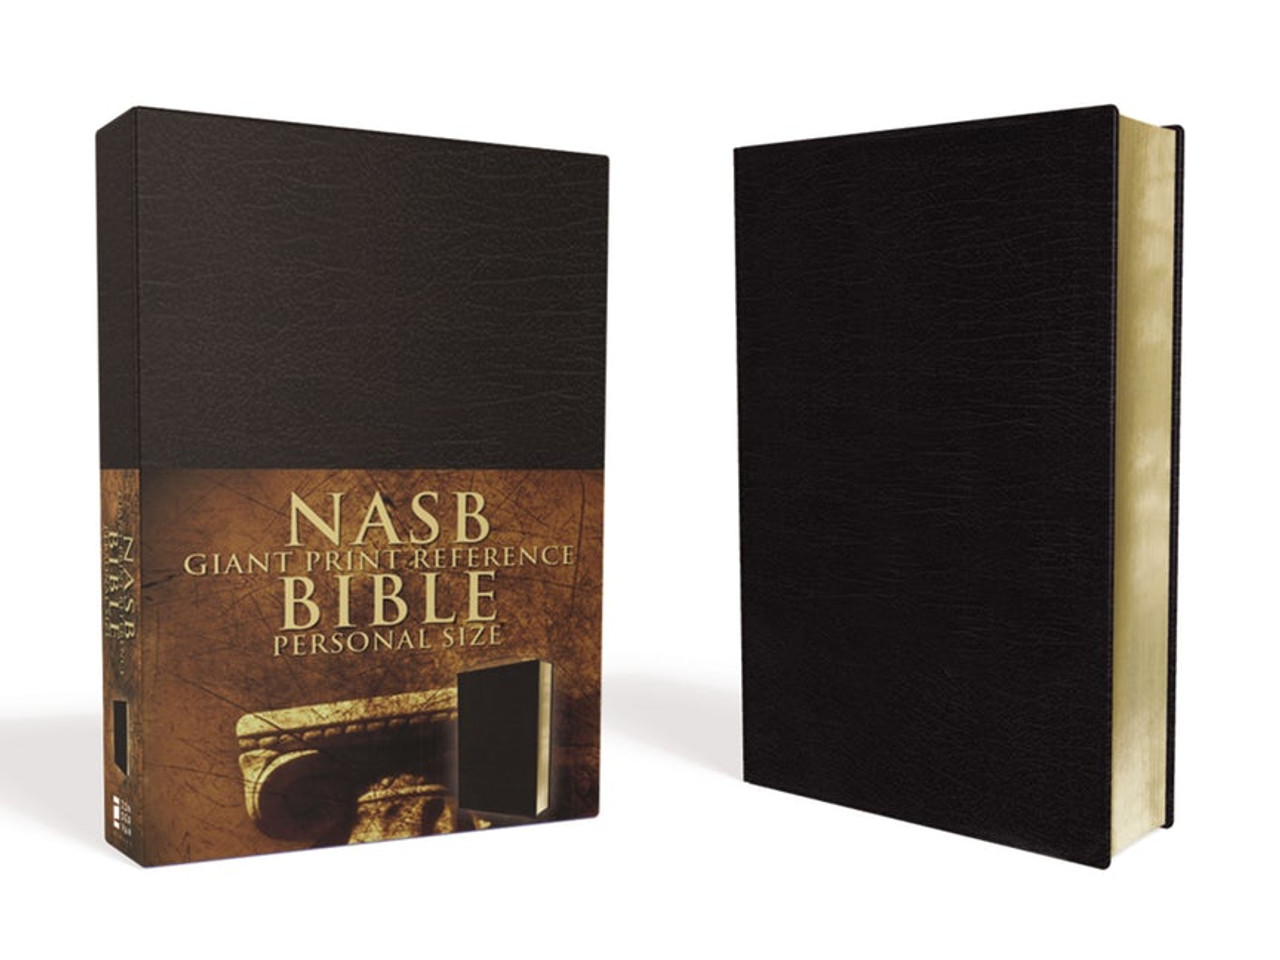 Bible NASB Personal Size Giant Print Reference Imitation Leather (Black)